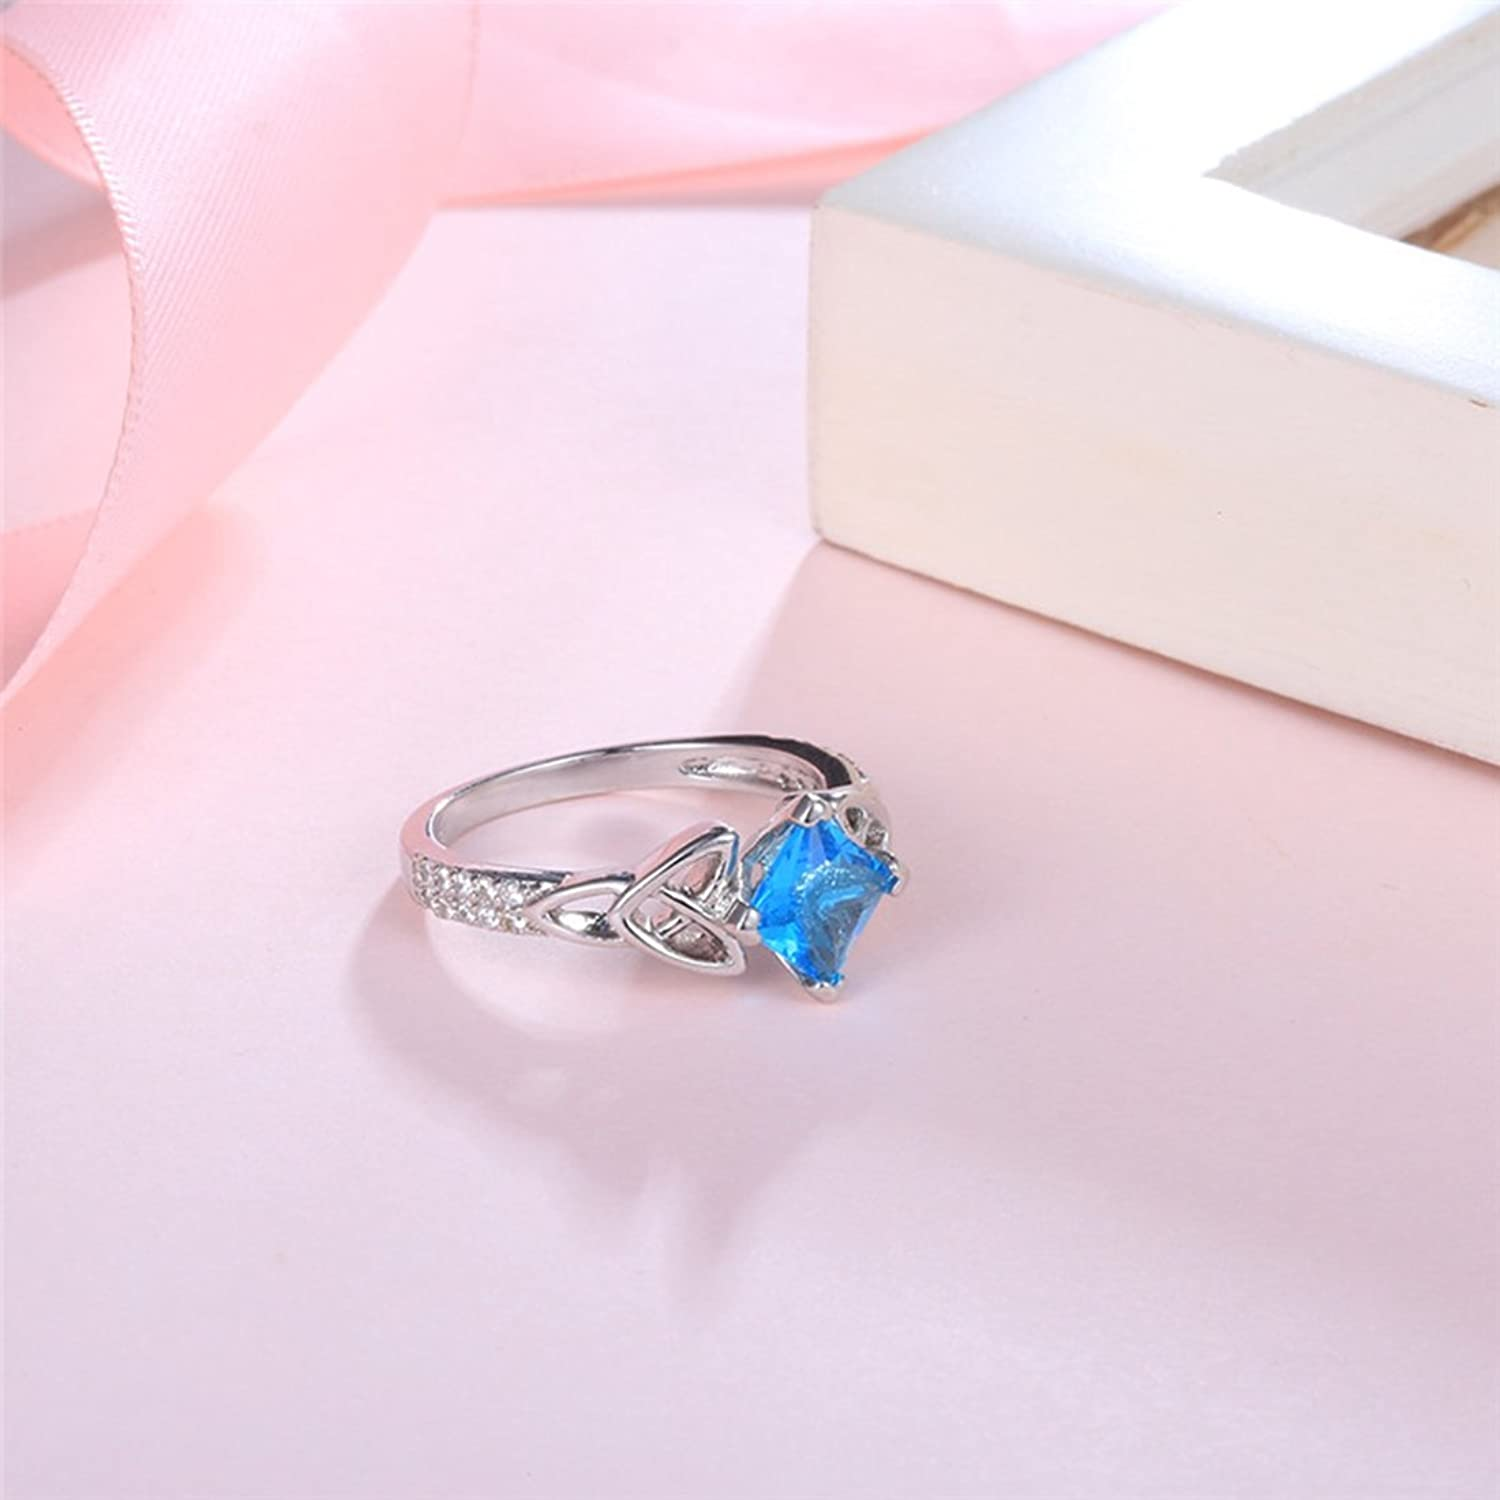 Cubic Zirconia Wedding Engagement Rings Vintage Celtic Knot Jewelry ...